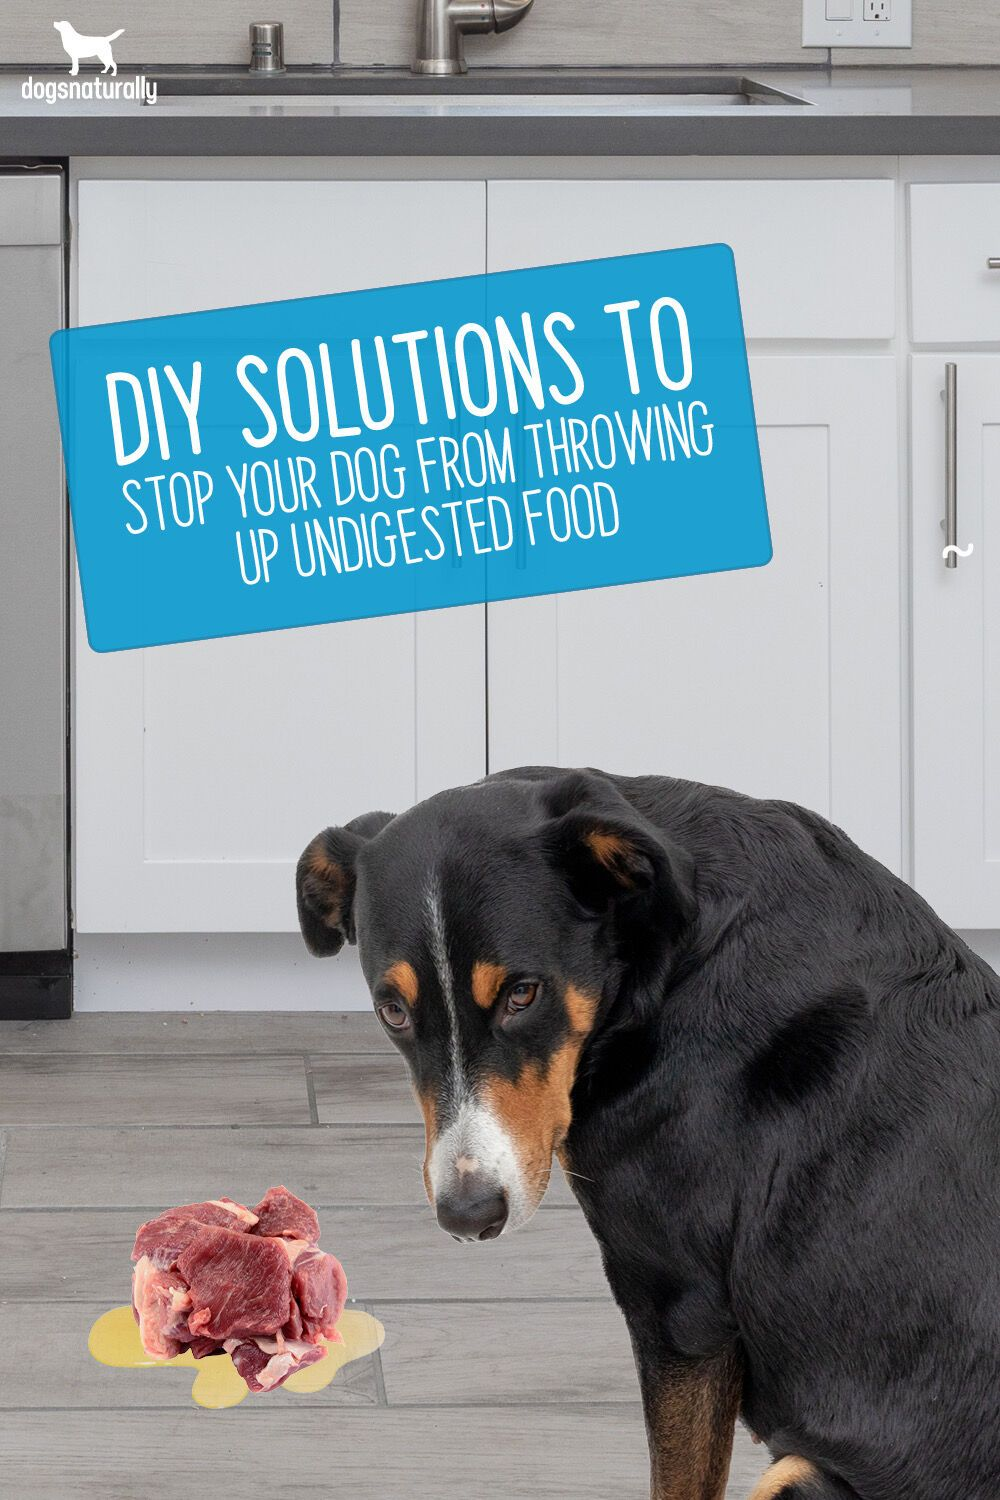 Pin on dog health conditions